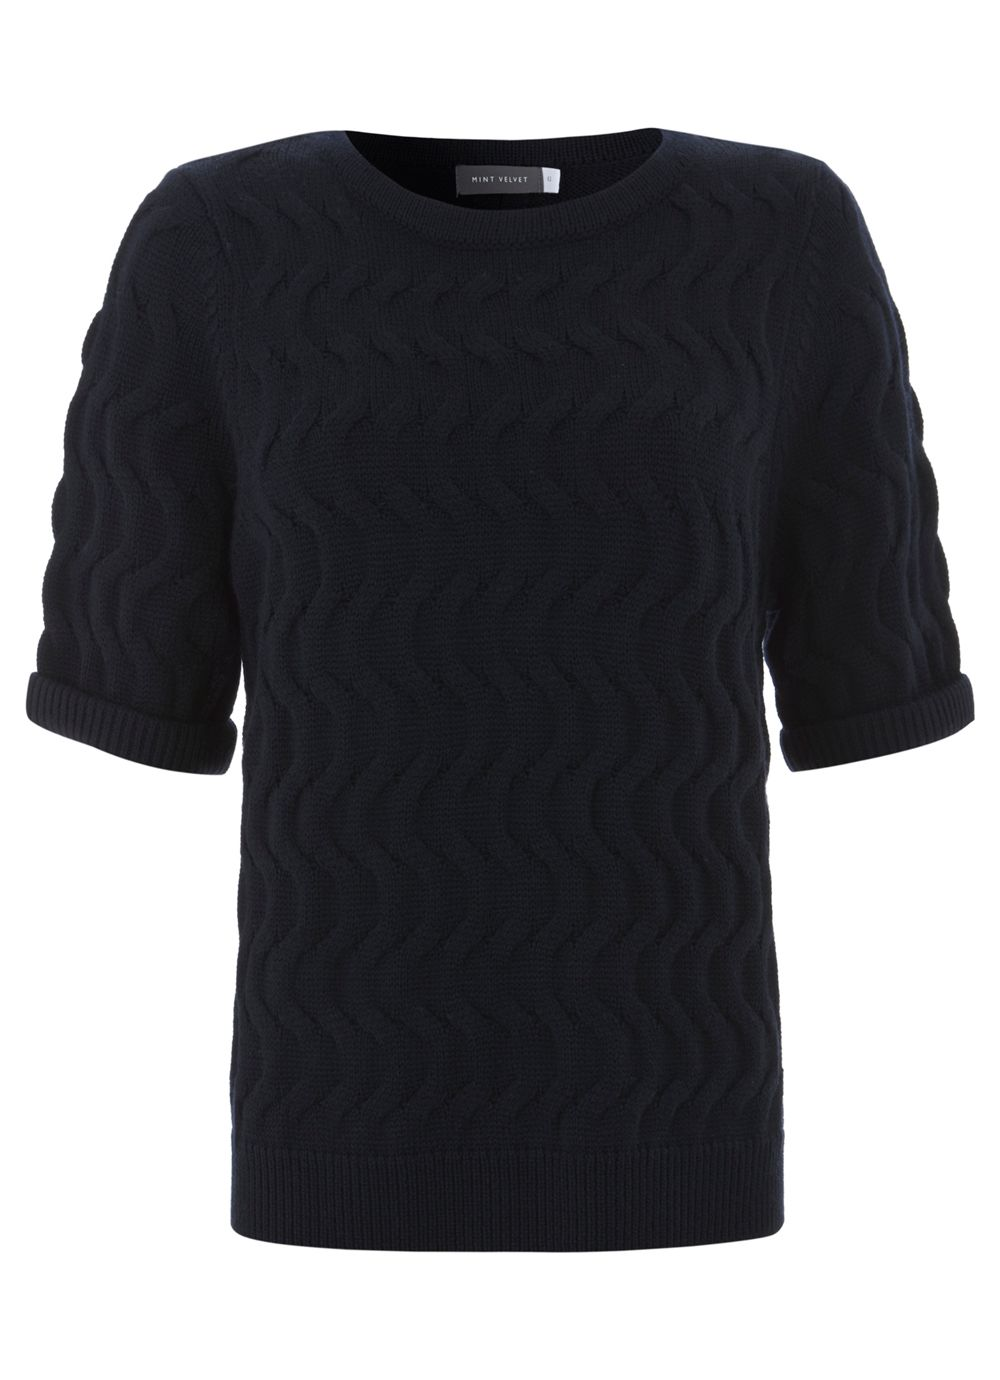 Navy Cable Stitch Knit